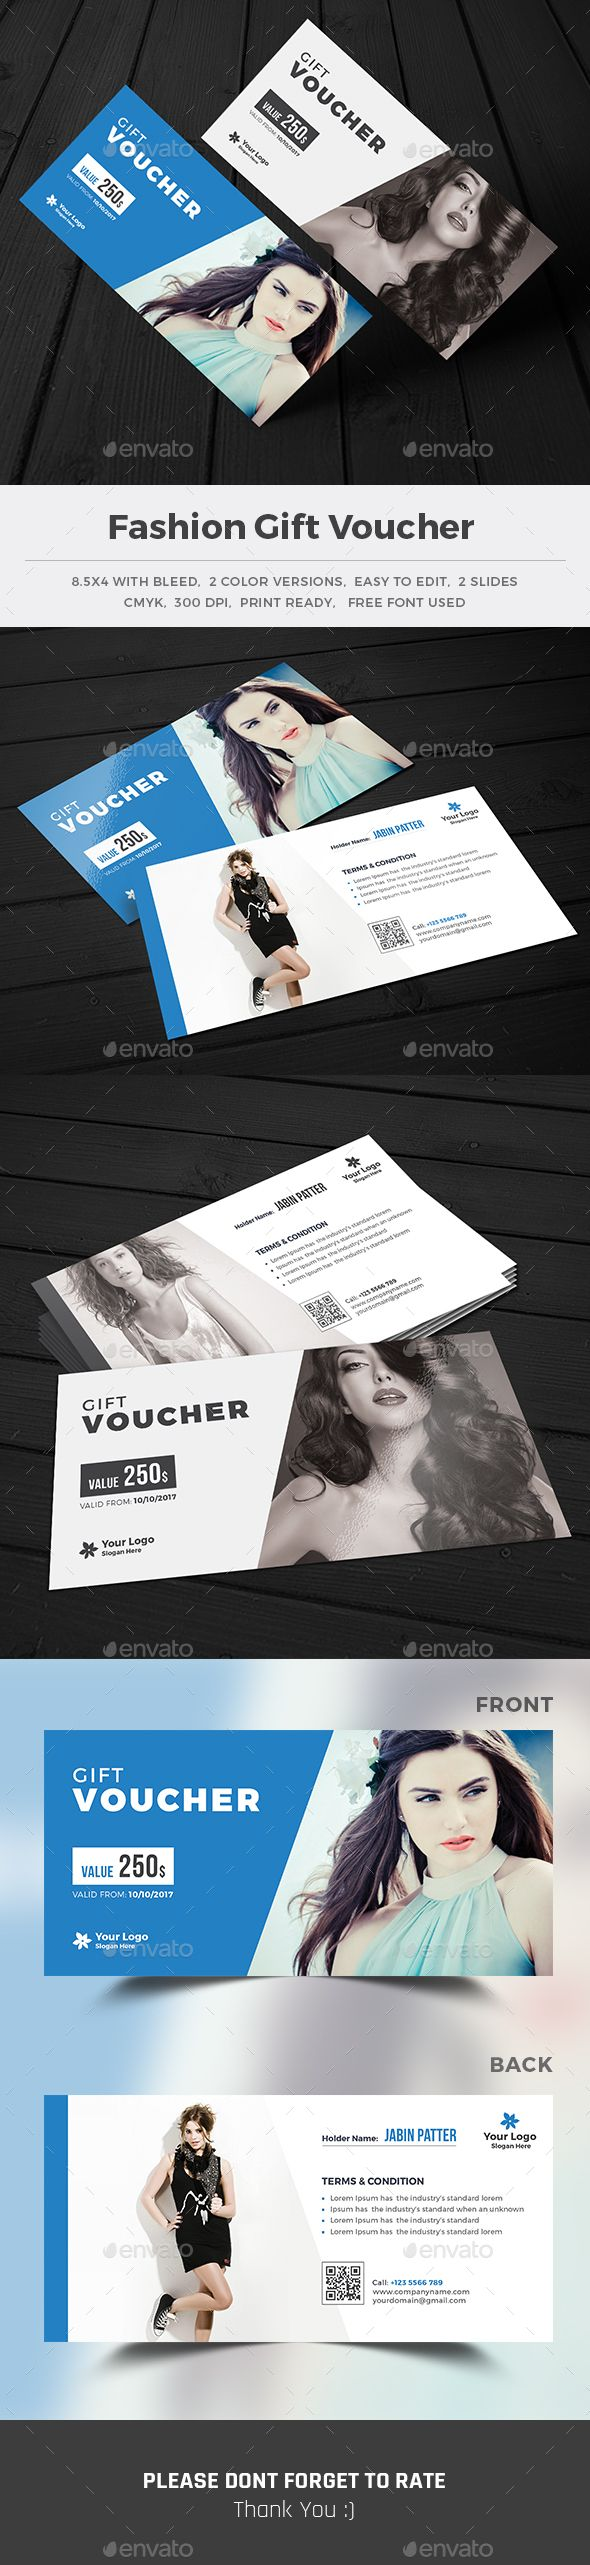 26 best gift voucher design images on pinterest gift voucher fashion gift voucher template psd download here httpgraphicriver yadclub Images